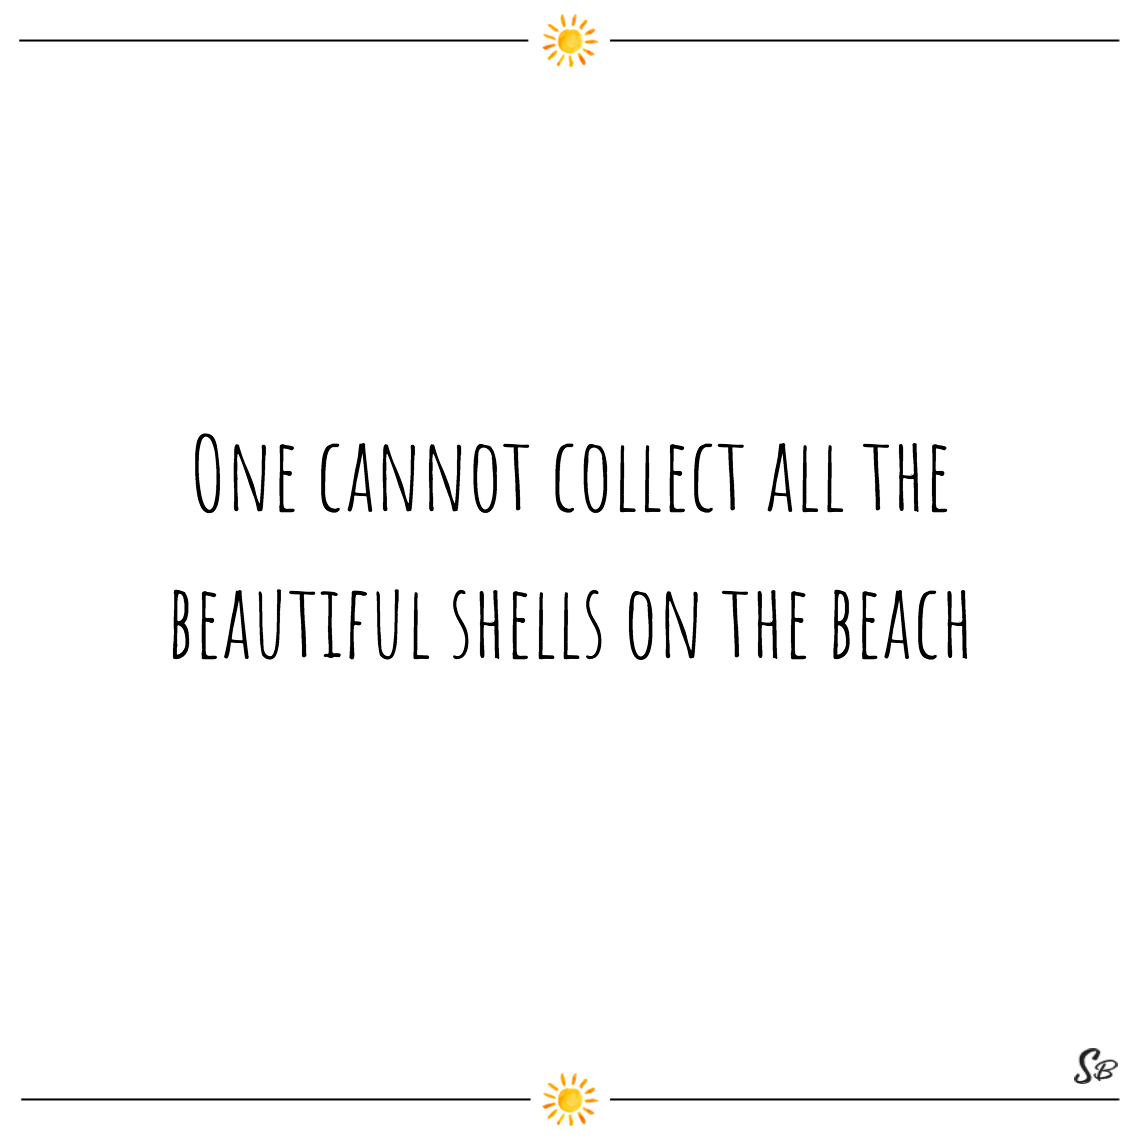 One cannot collect all the beautiful shells on the beach anne lindbergh beach quotes